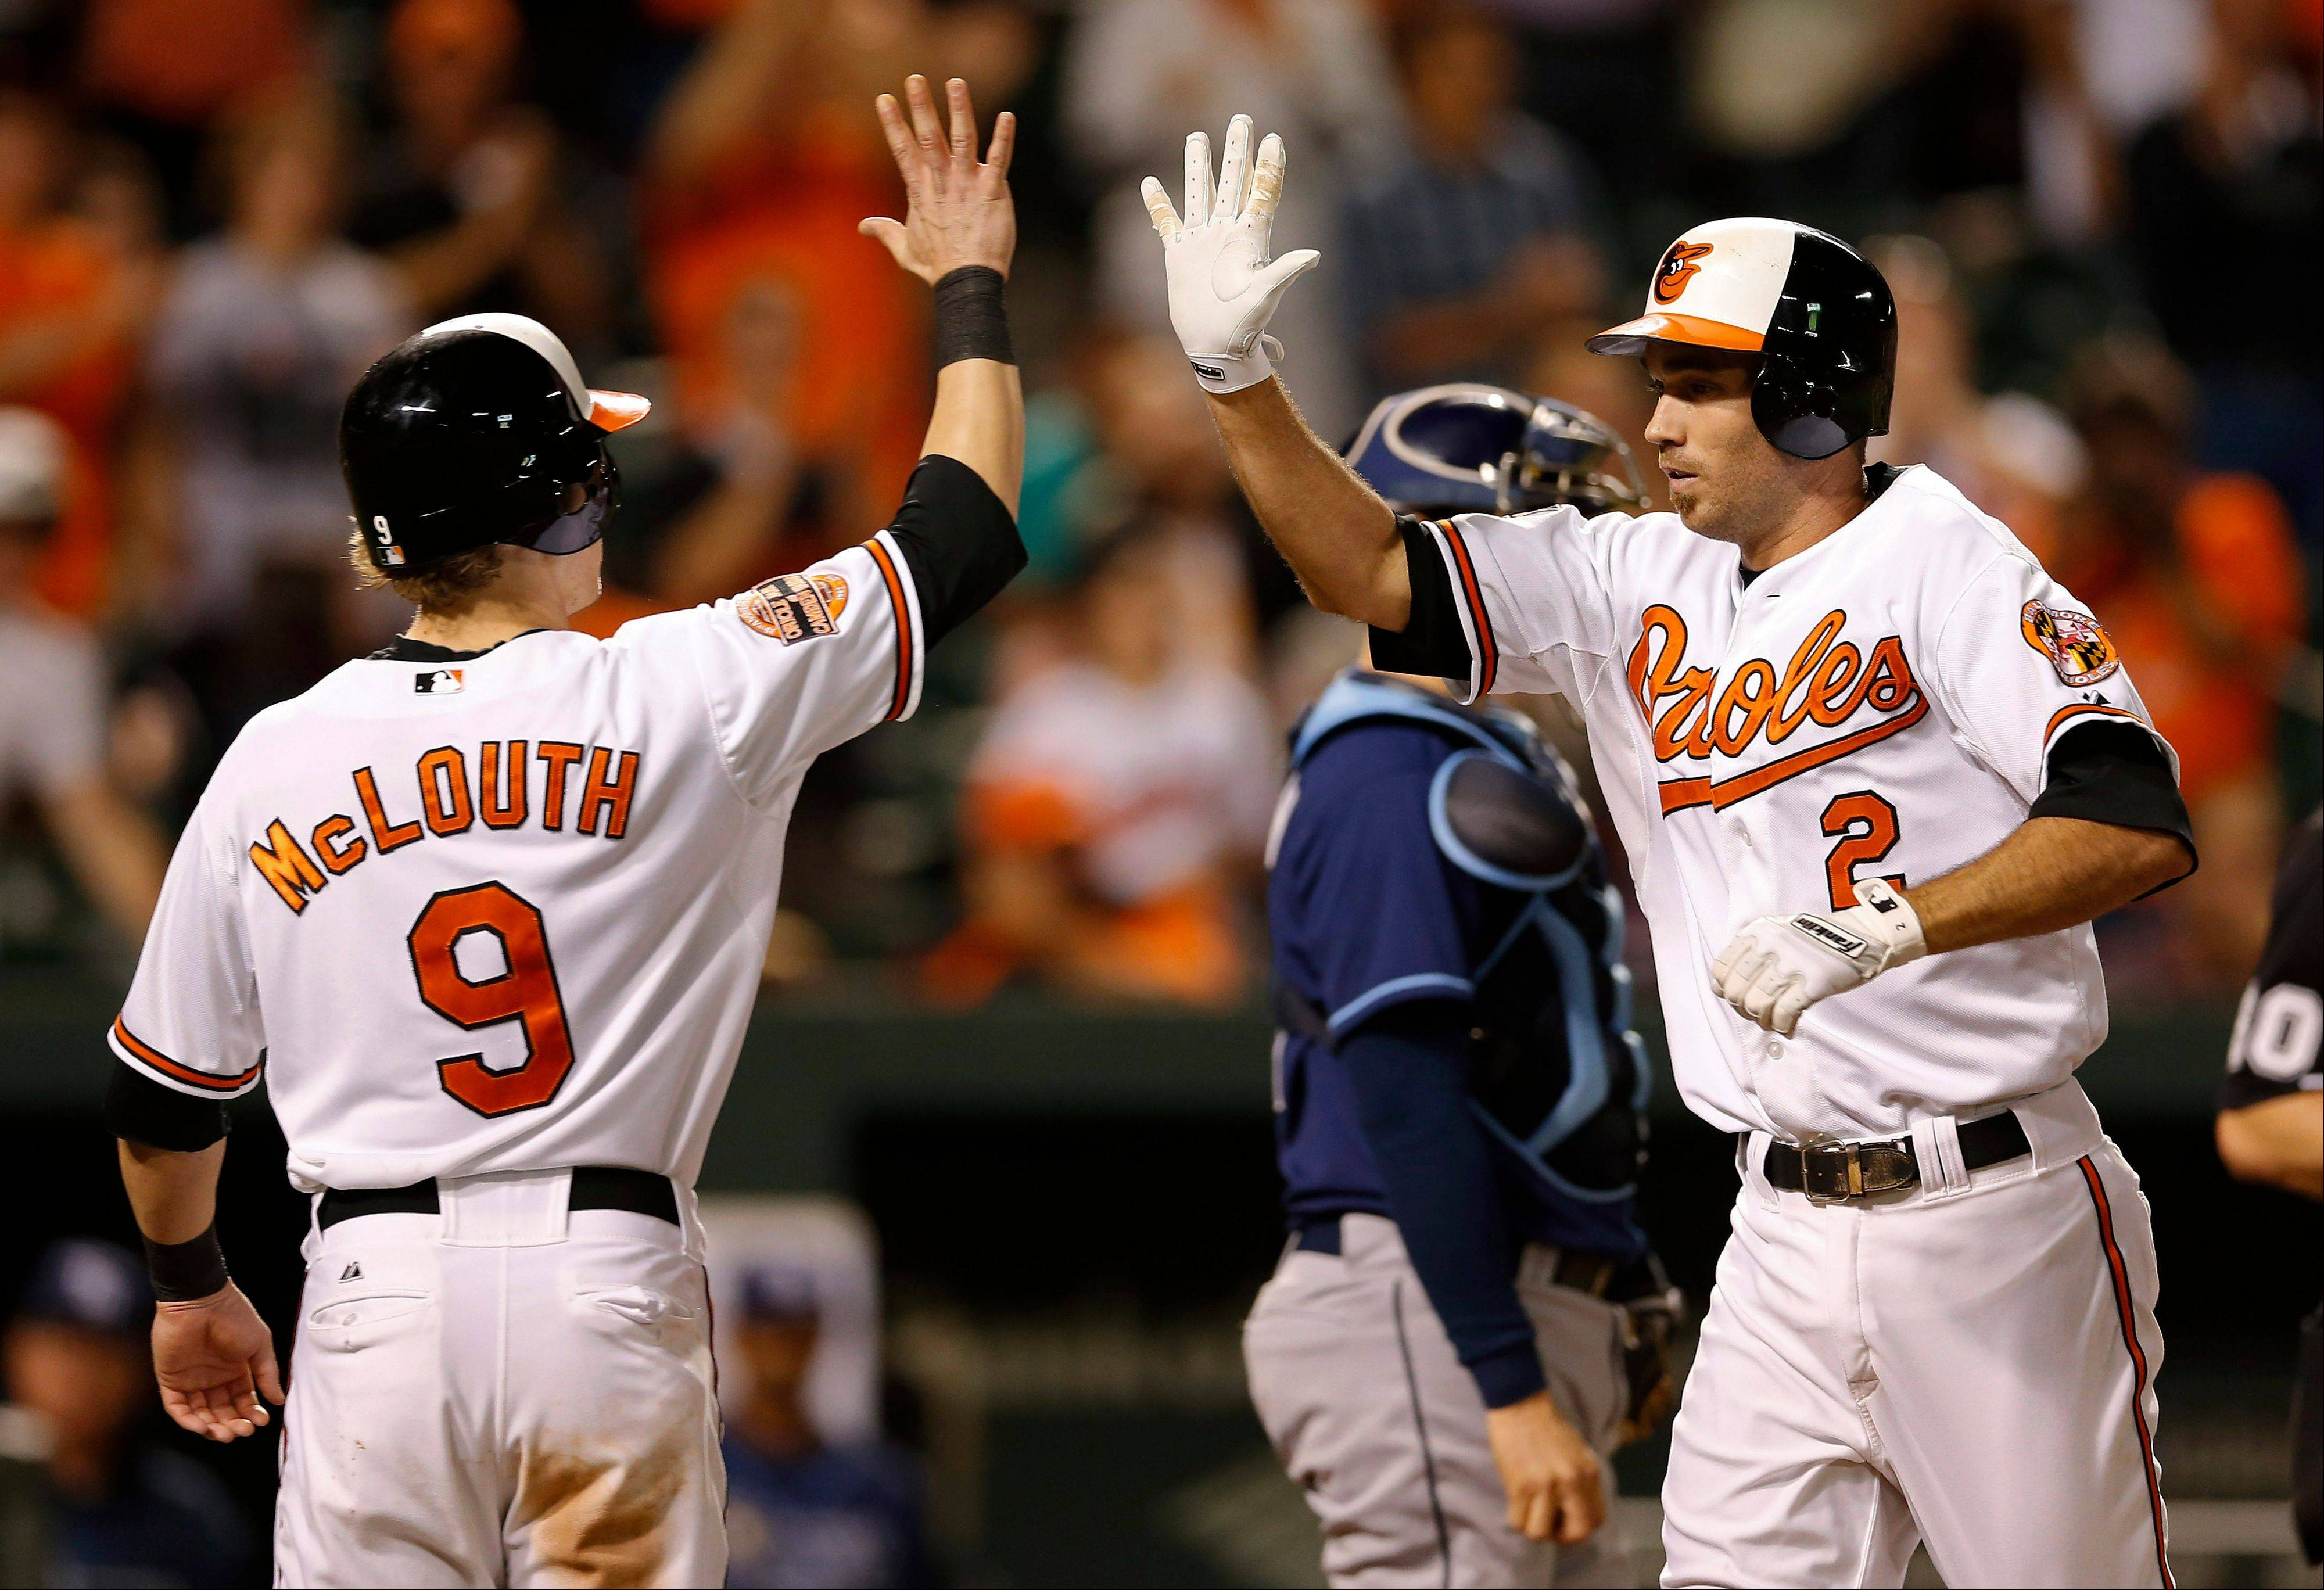 Baltimore's J.J. Hardy, right, high-fives teammate Nate McLouth after driving him in on a home run in the eighth inning Tuesday at home against Tampa Bay.